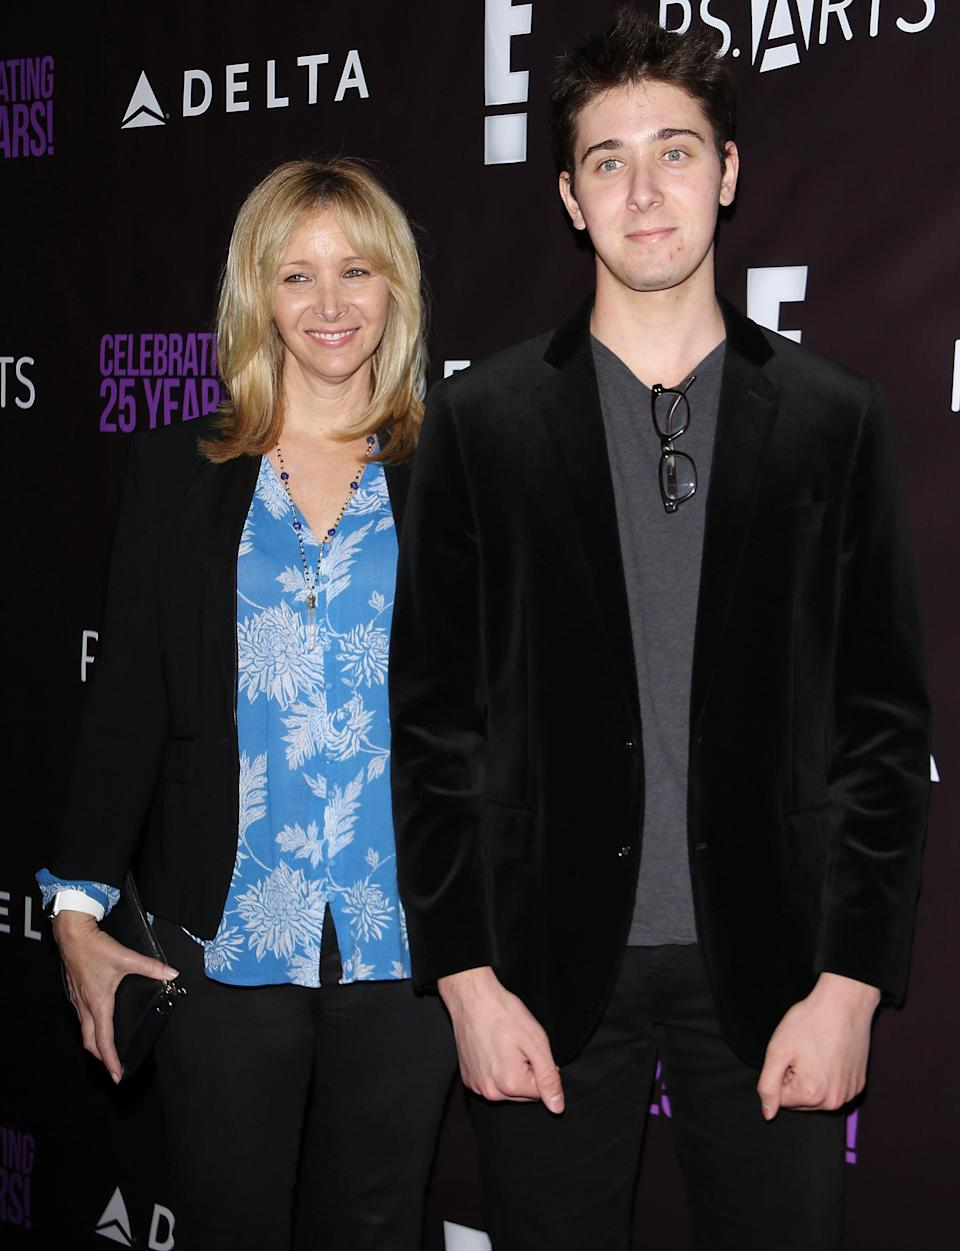 Lisa Kudrow (L) and Julian Murray Stern arrive at the P.S. Arts' The Party held at NeueHouse Hollywood on May 20, 2016 in Los Angeles, California. (Photo by Michael Tran/FilmMagic)